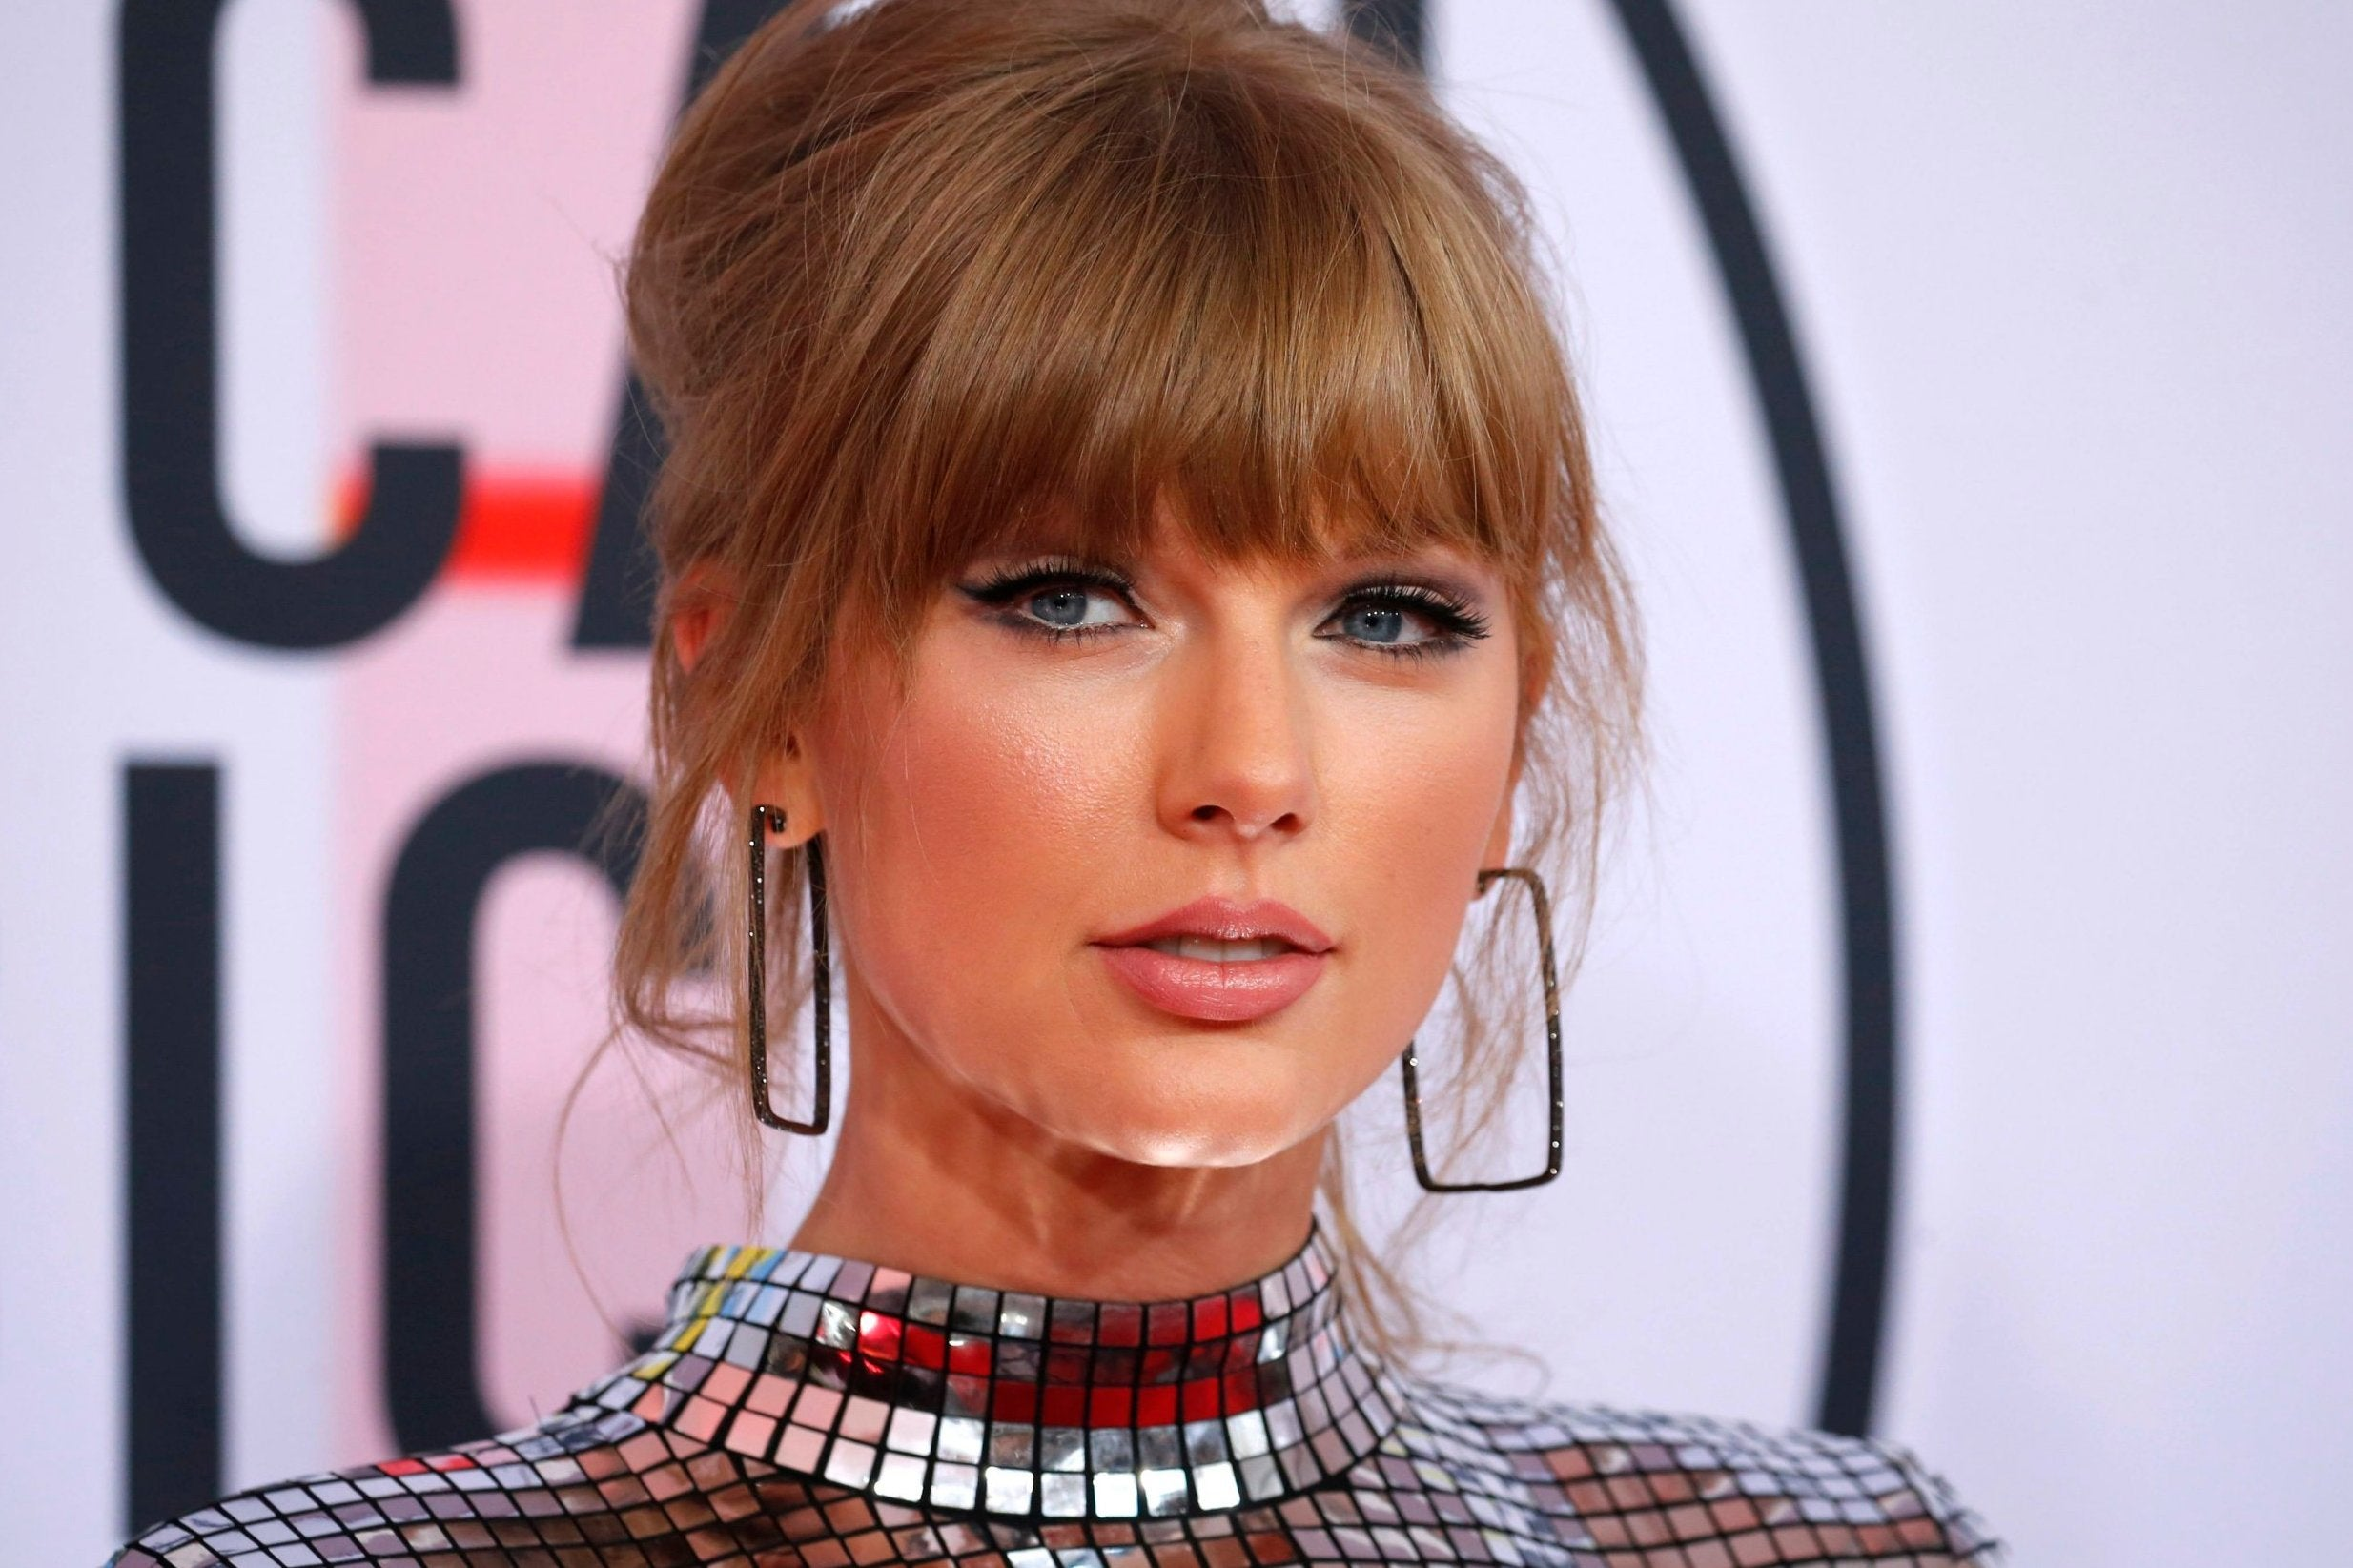 Taylor Swift teases new album with mysterious countdown clock on social media